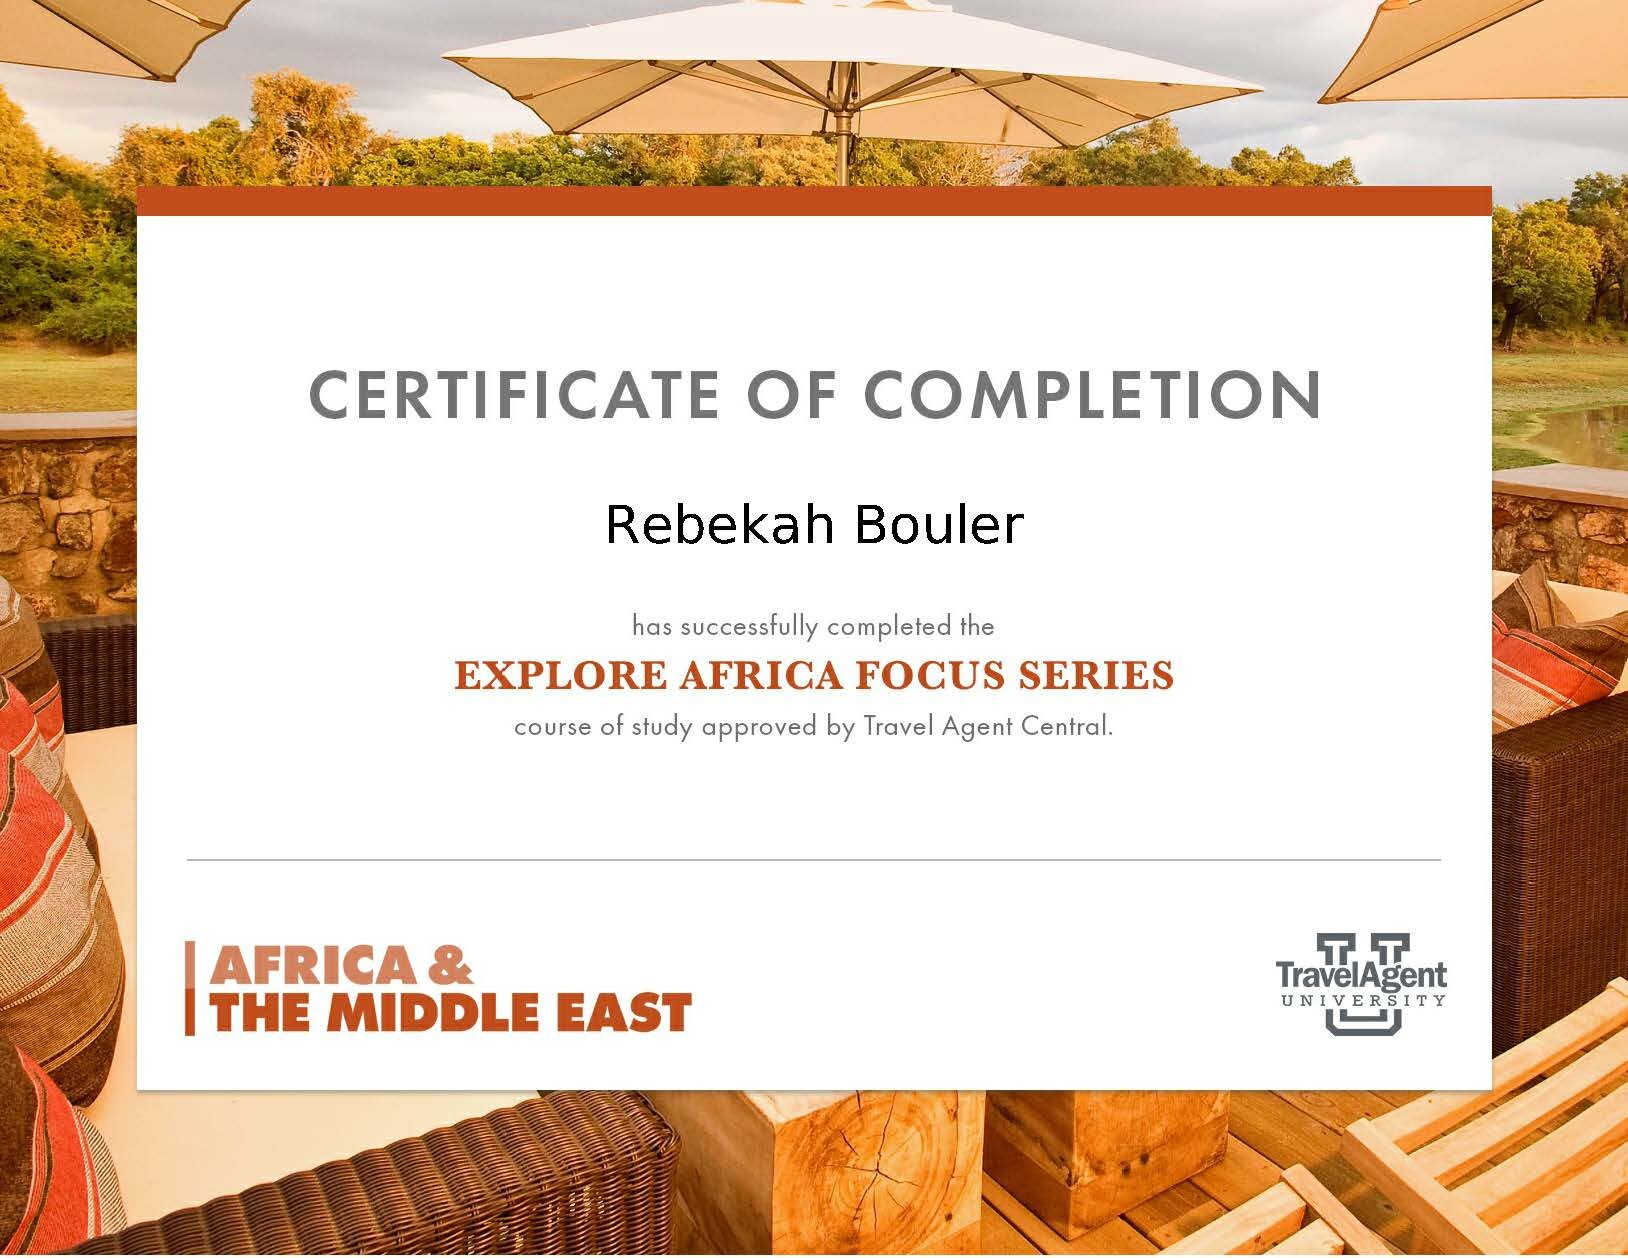 Africa and Middle East certificate.jpg